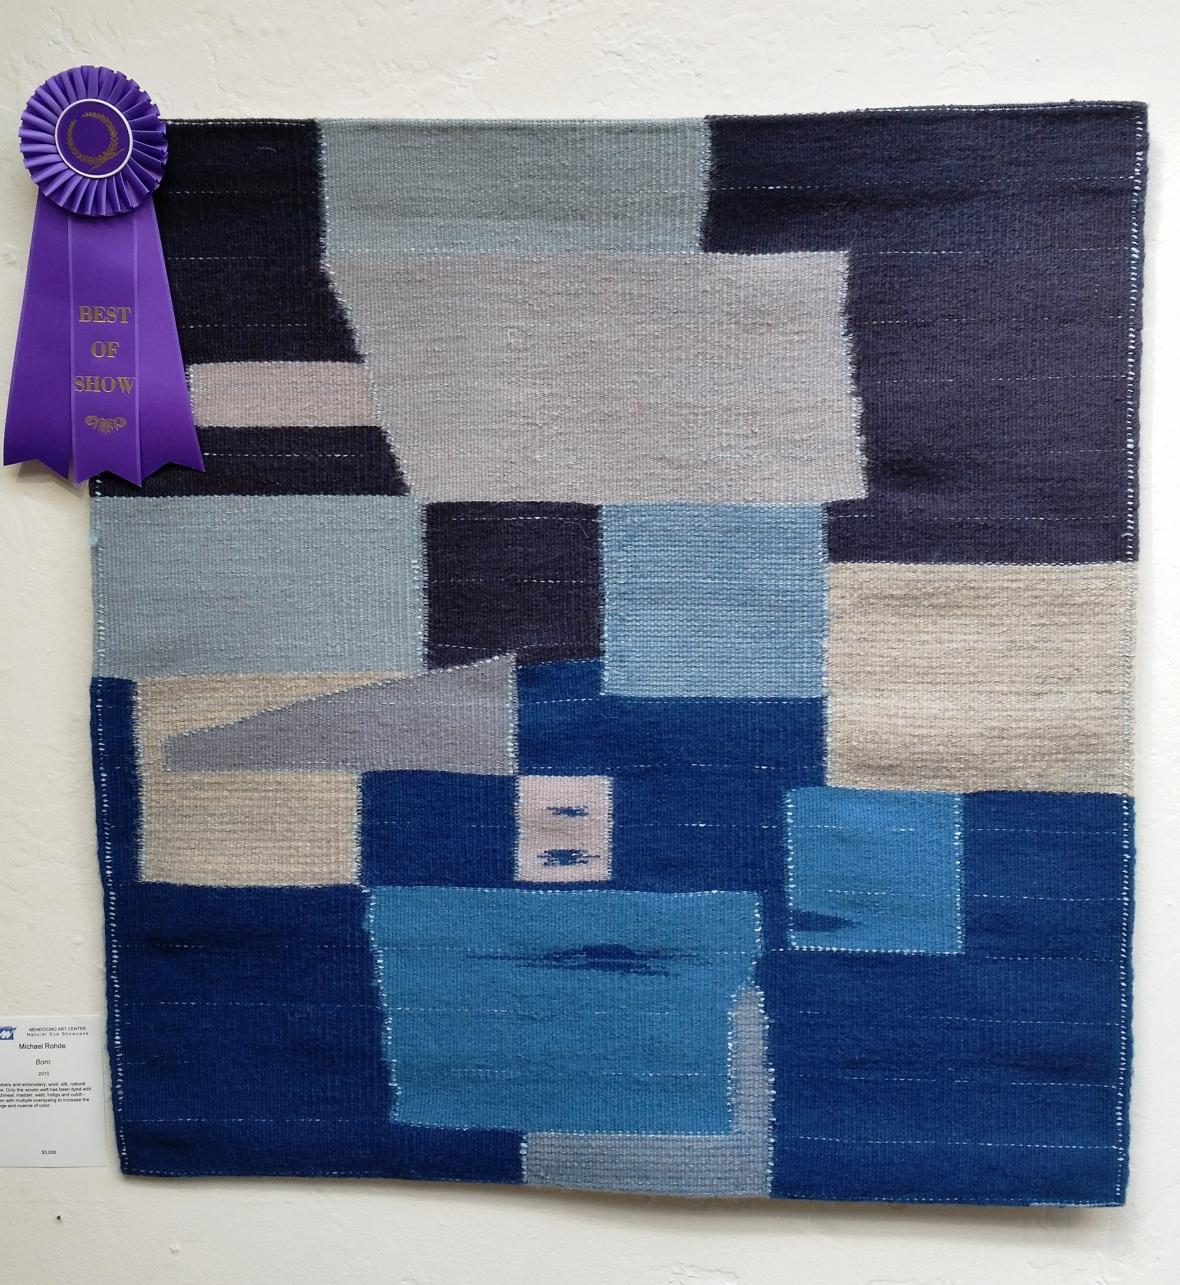 Best of show went to Michael Rohde for this tapestry.